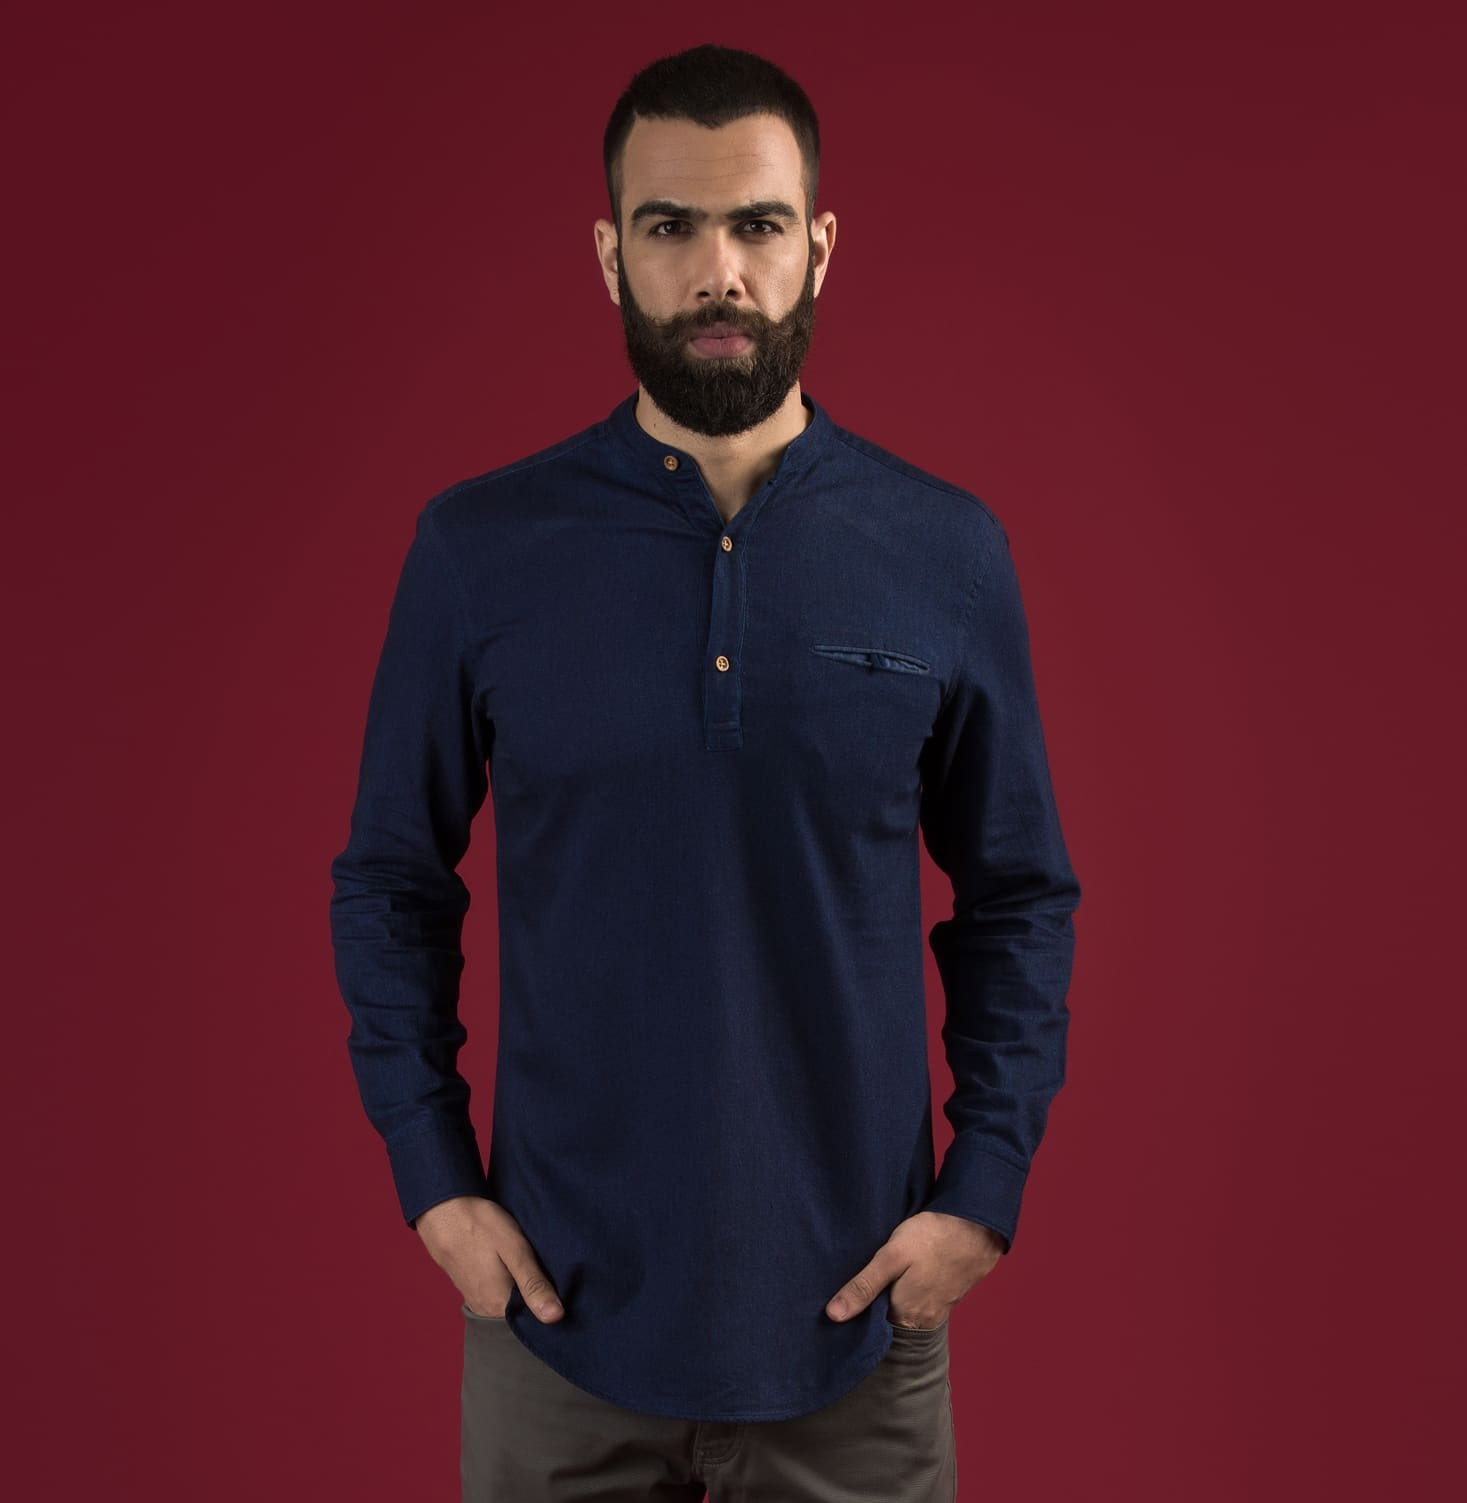 Neel Popover Branded Designer Shirts for Men